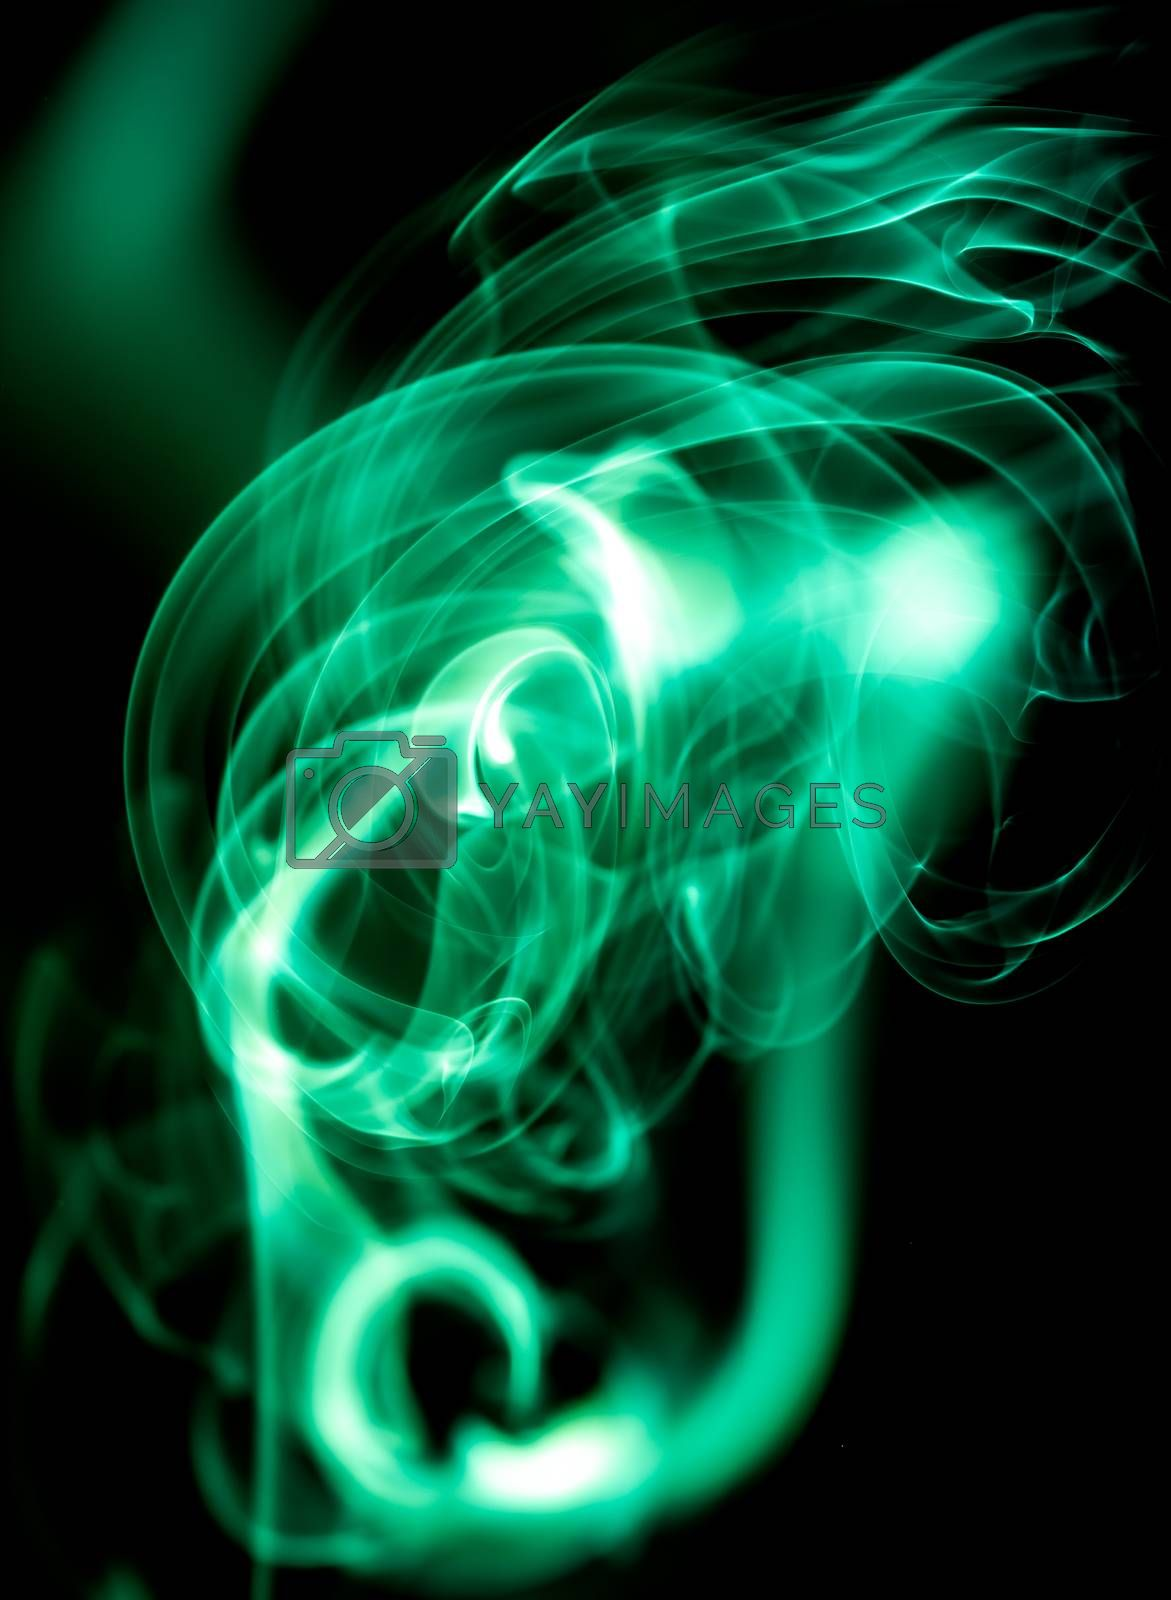 Red abstract shaped smoke against black background. Abstract background. Selective focus